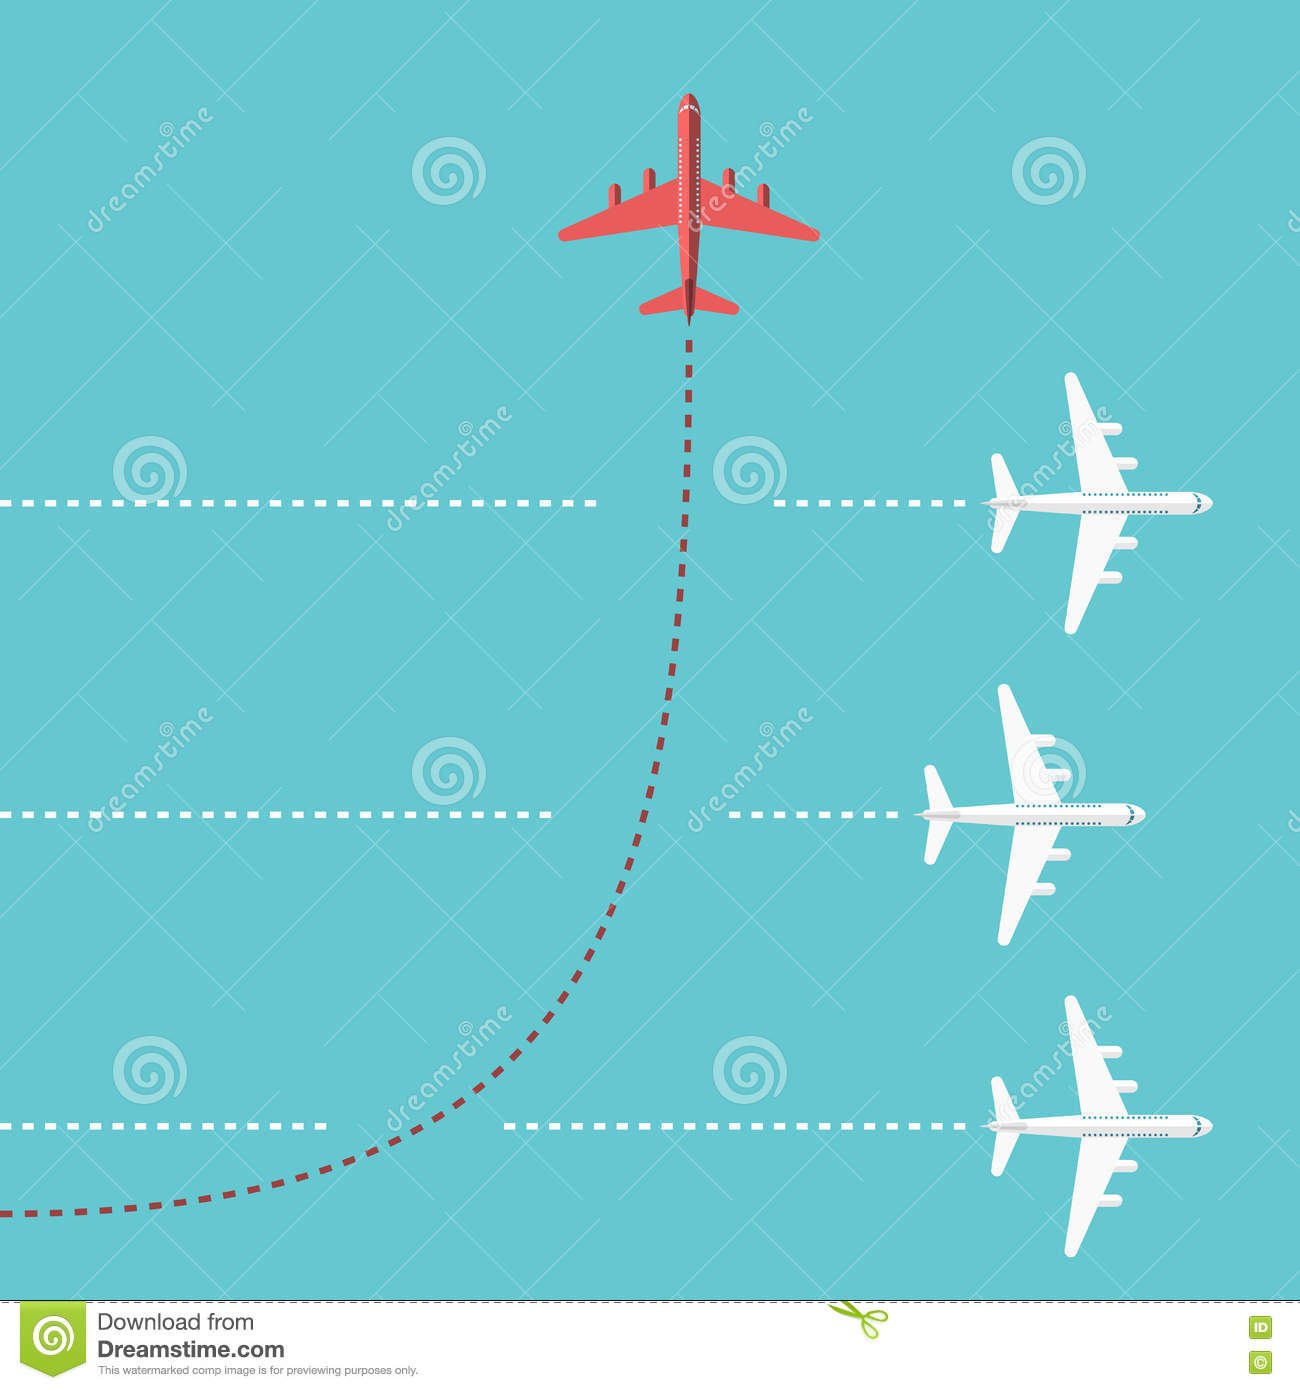 Red airplane changing direction